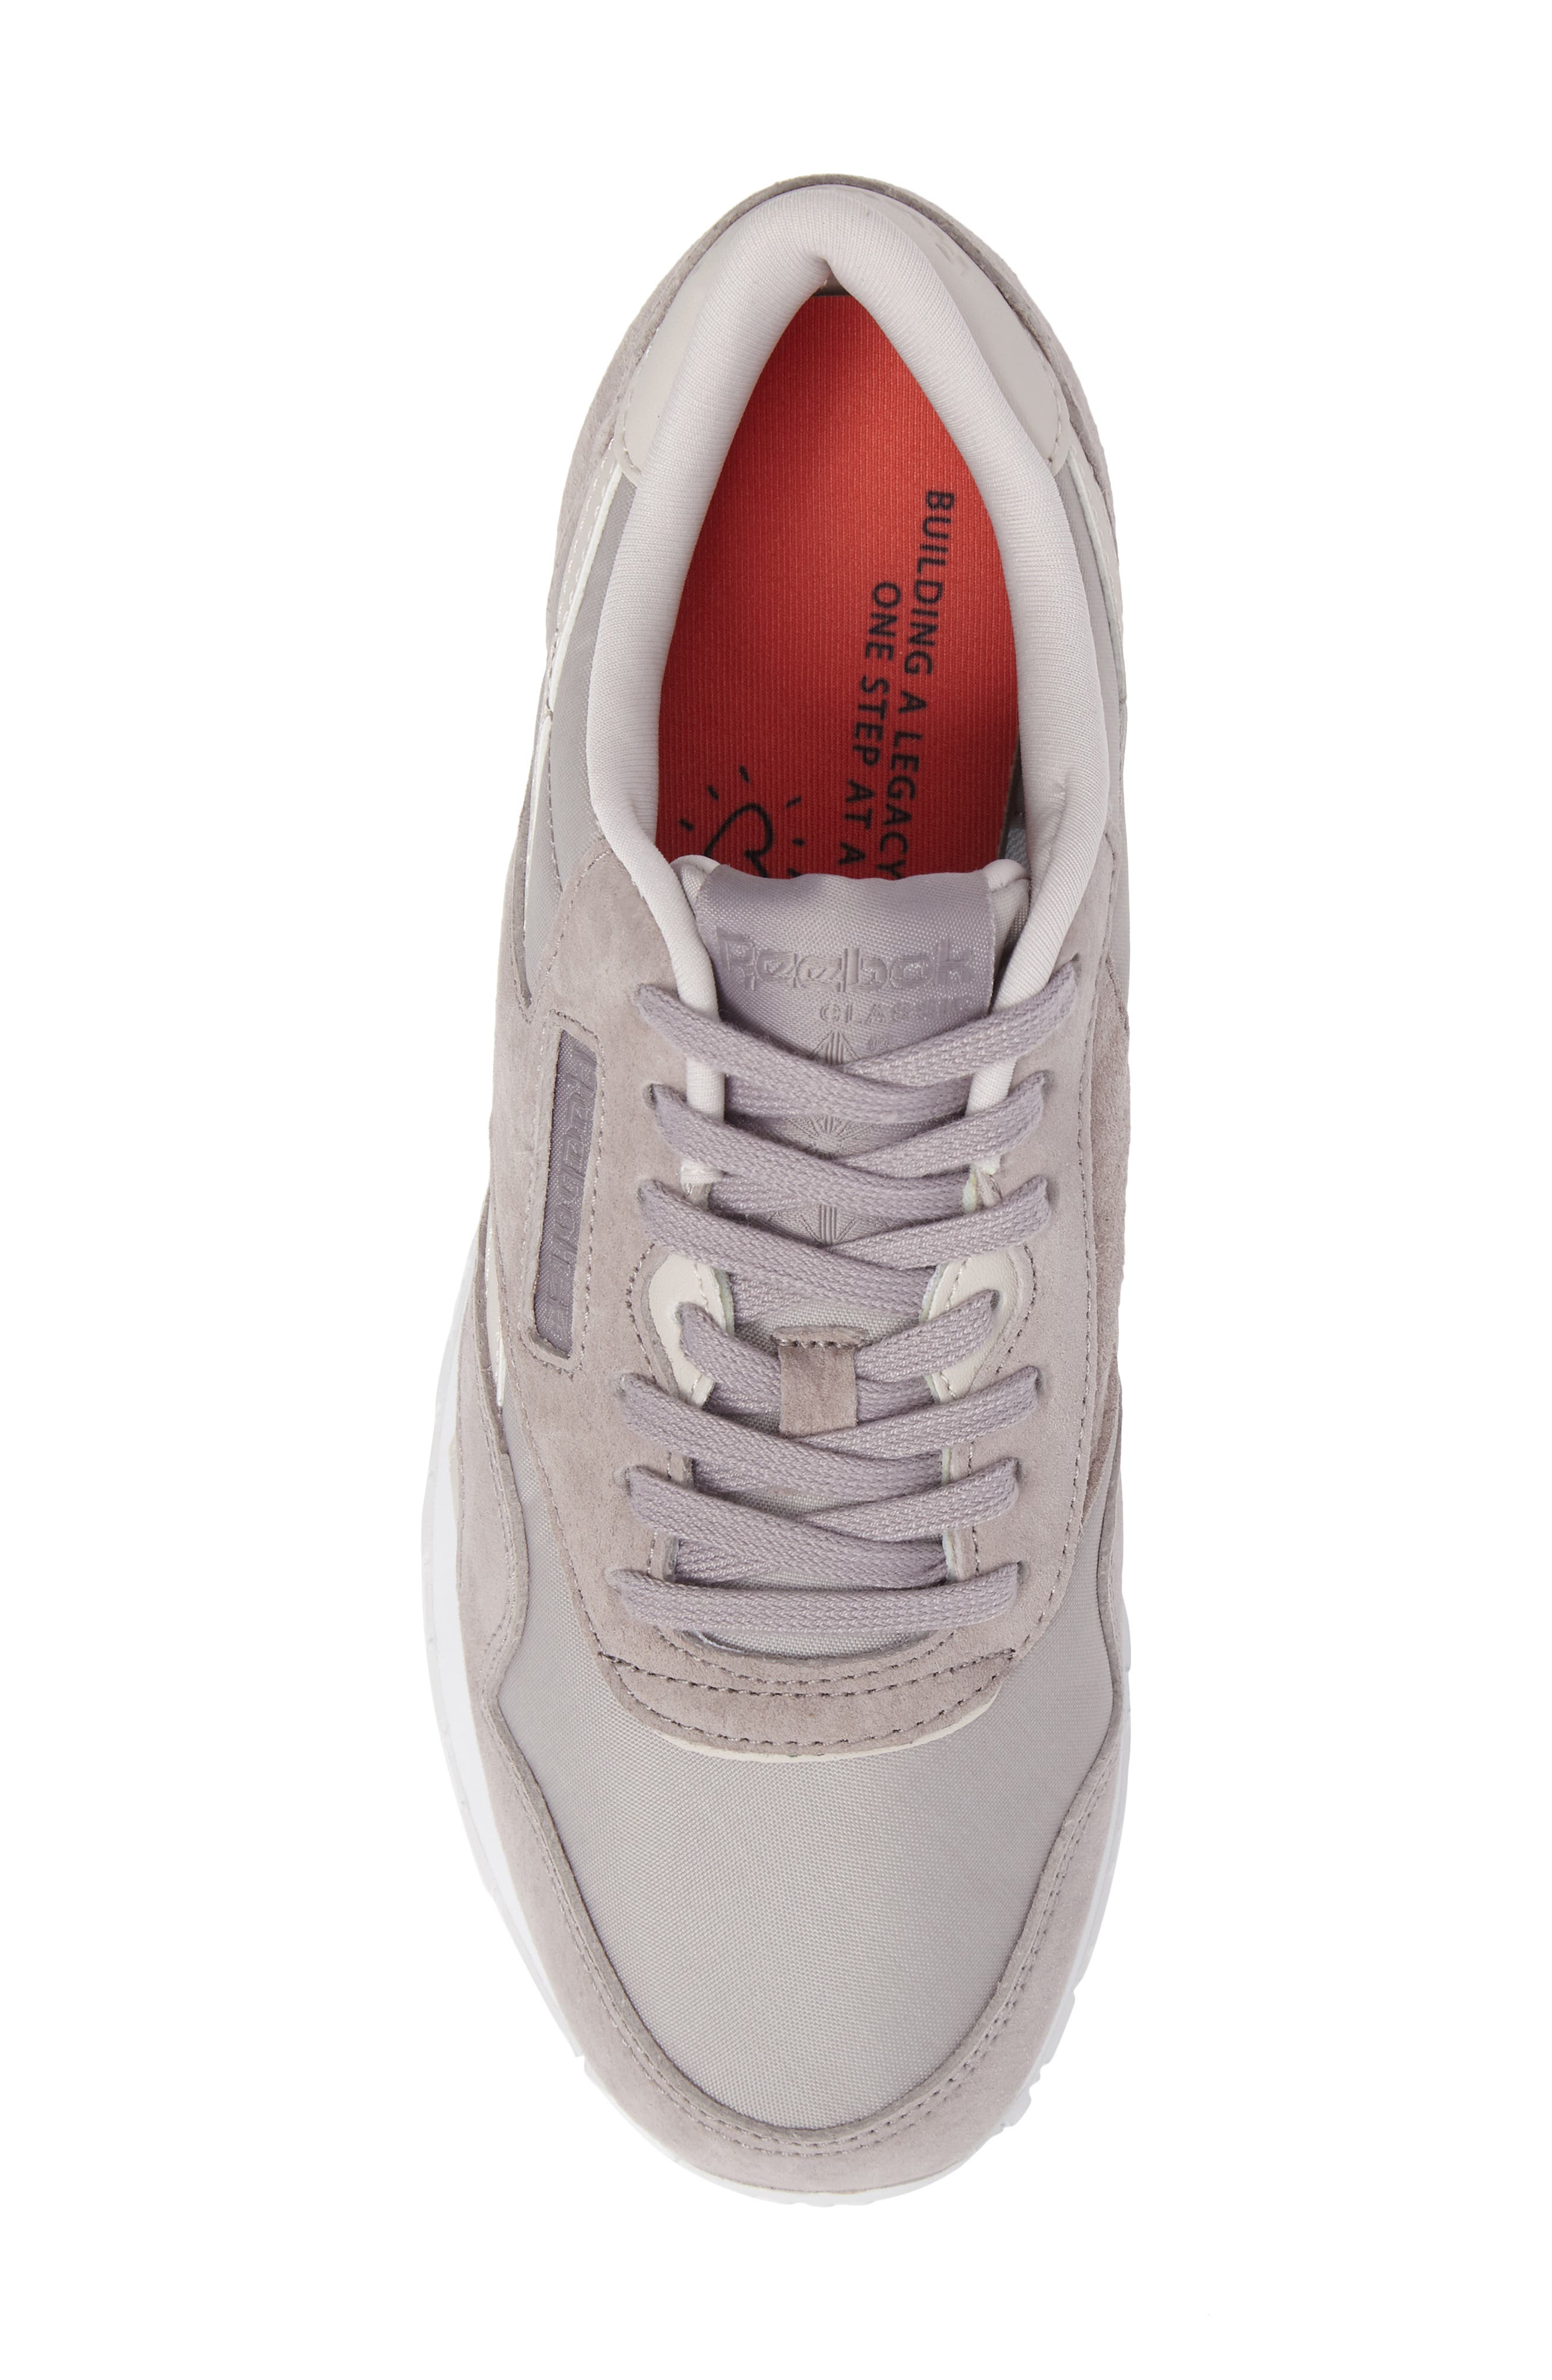 x FACE Stockholm Classic Sneaker,                             Alternate thumbnail 5, color,                             020